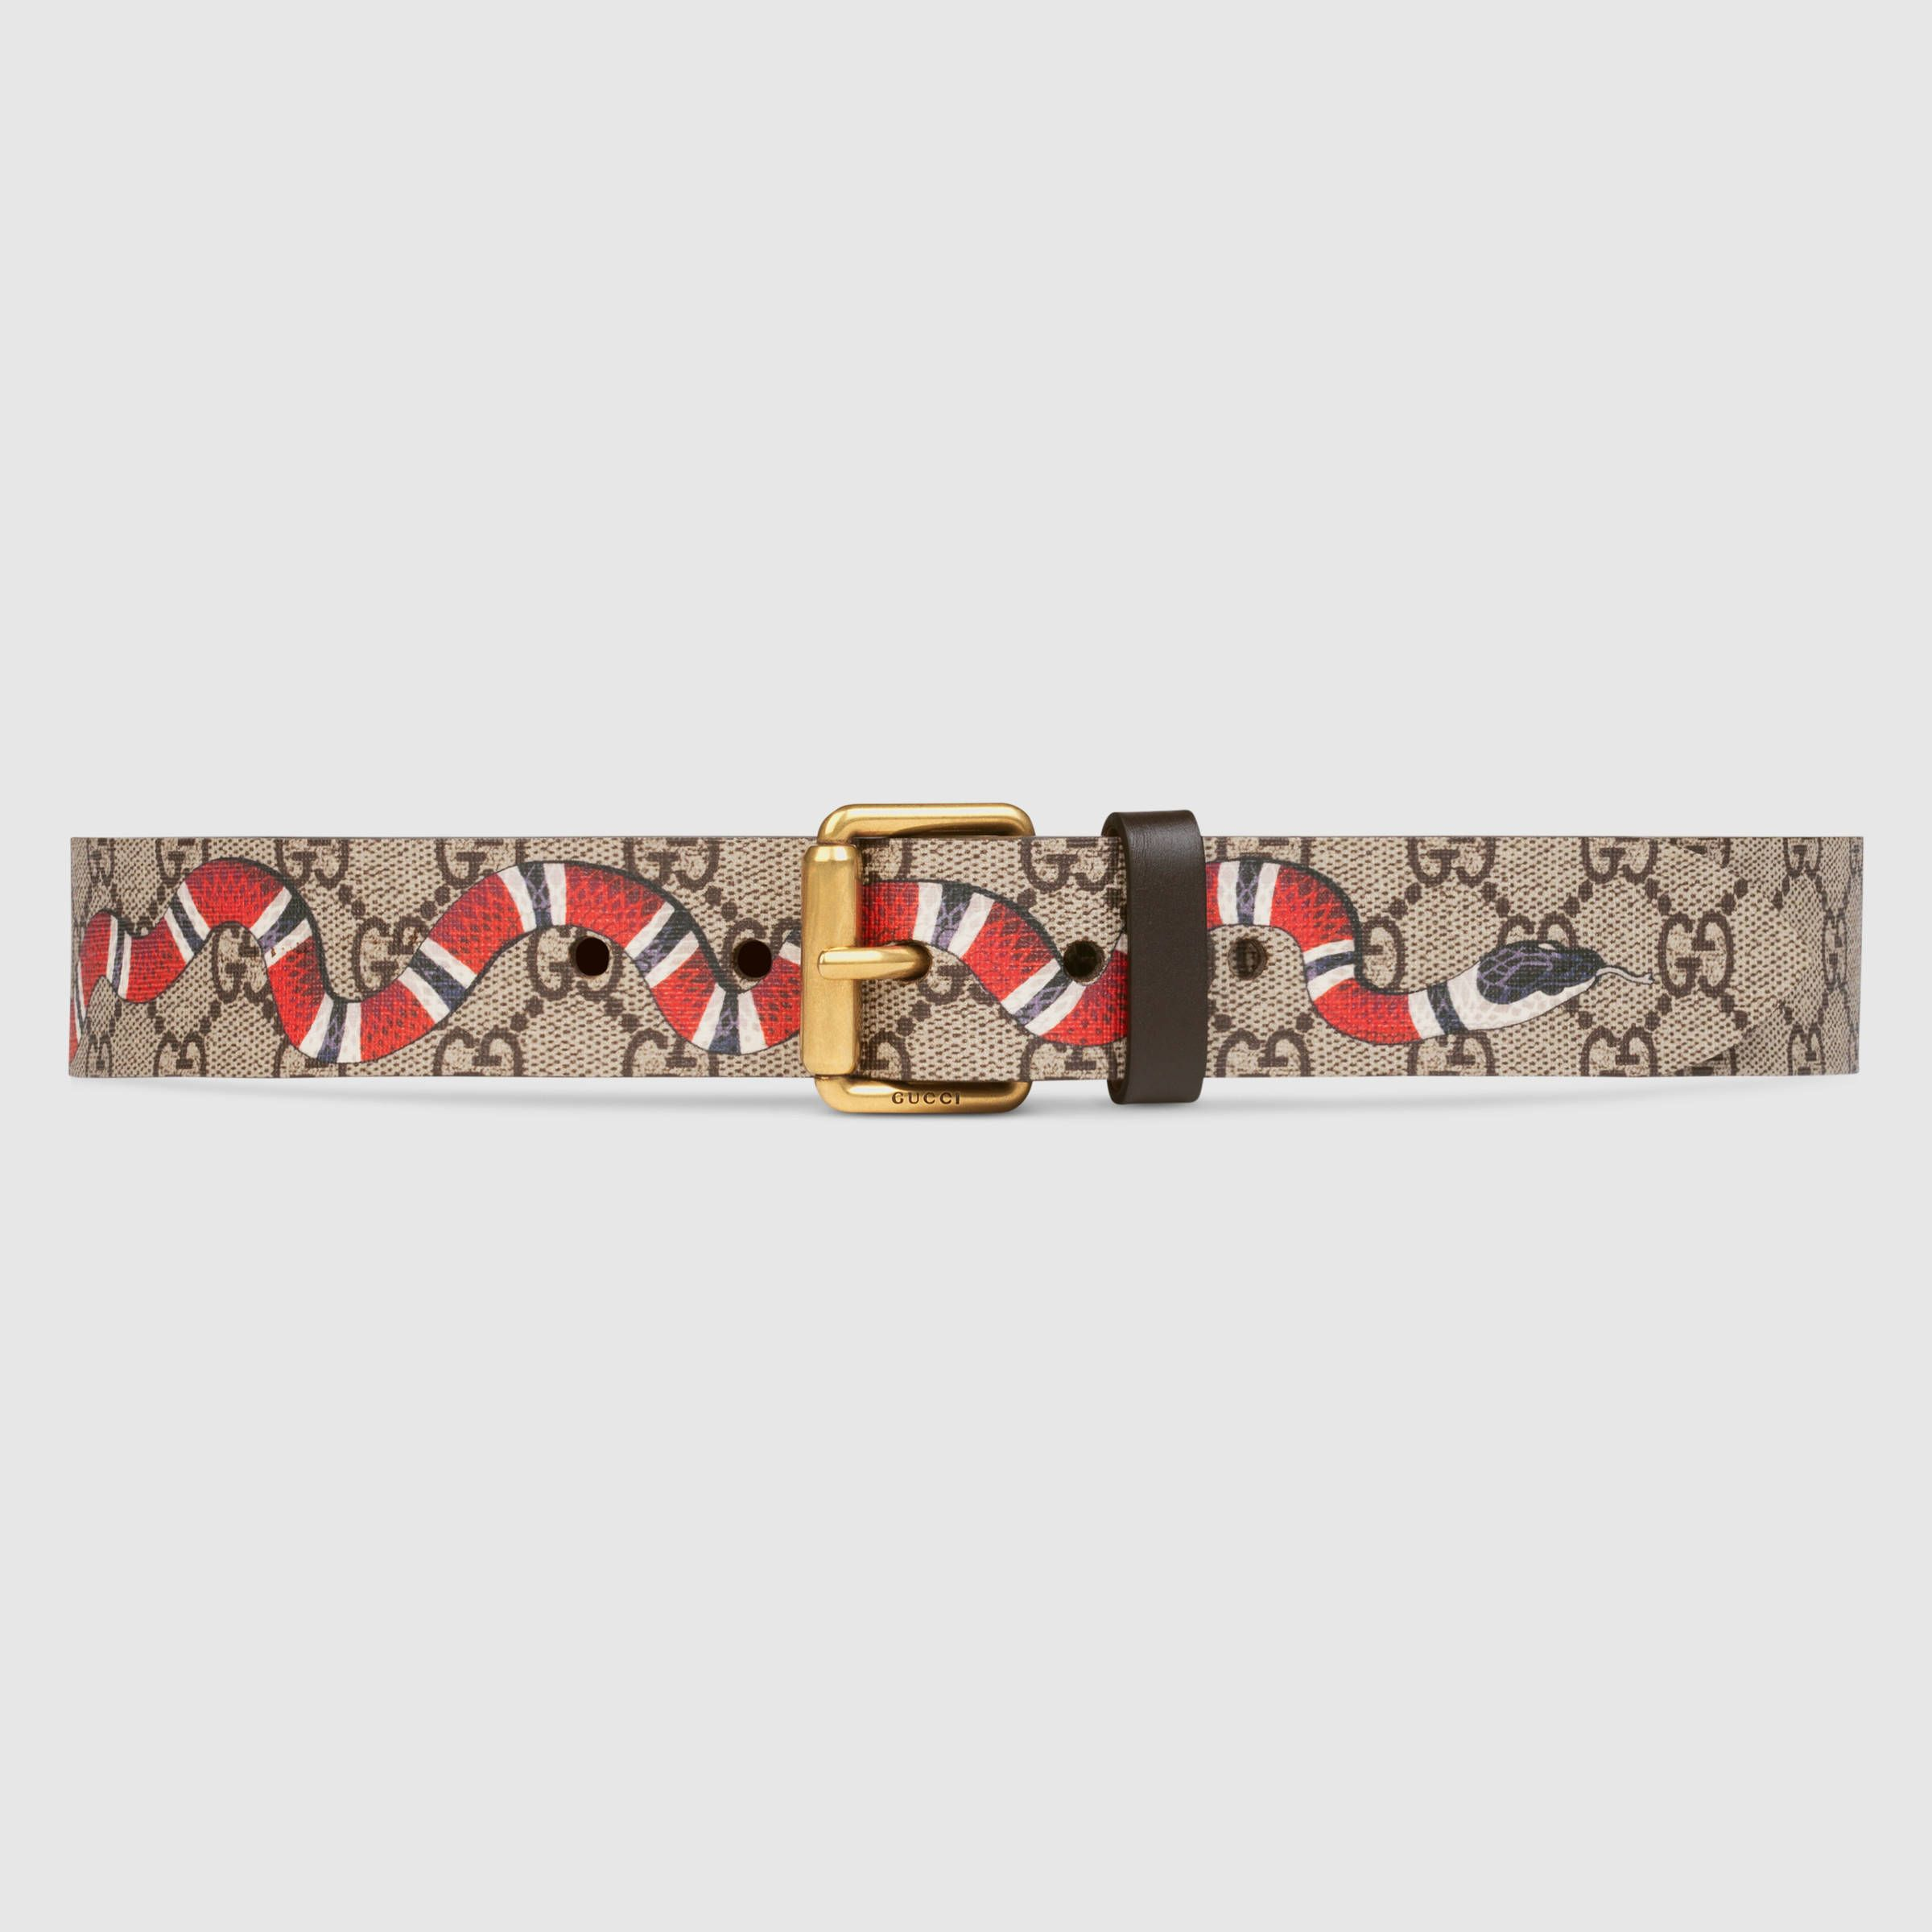 "bf7cdcfefb1 Gucci Headband Brand new. Tags still attached ""no box"" unisex can be worn  by men or women. Headband is red"